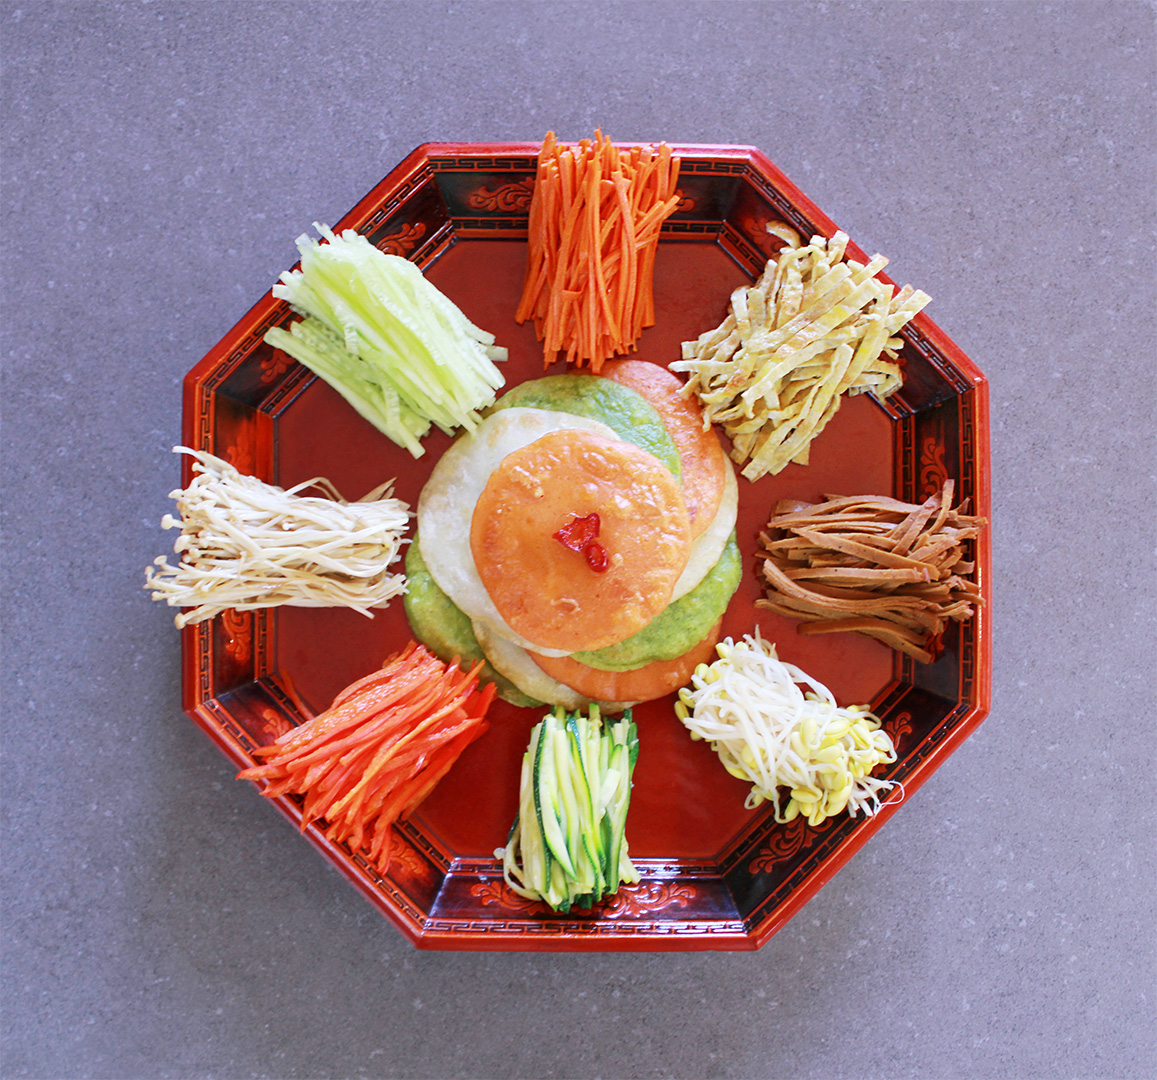 The Gujeolpan is one of the most colorful and beautiful of Korean dishes. It is made up of nine different ingredients, including flour pancake wraps (jeon) and thinly sliced vegetables and meat.